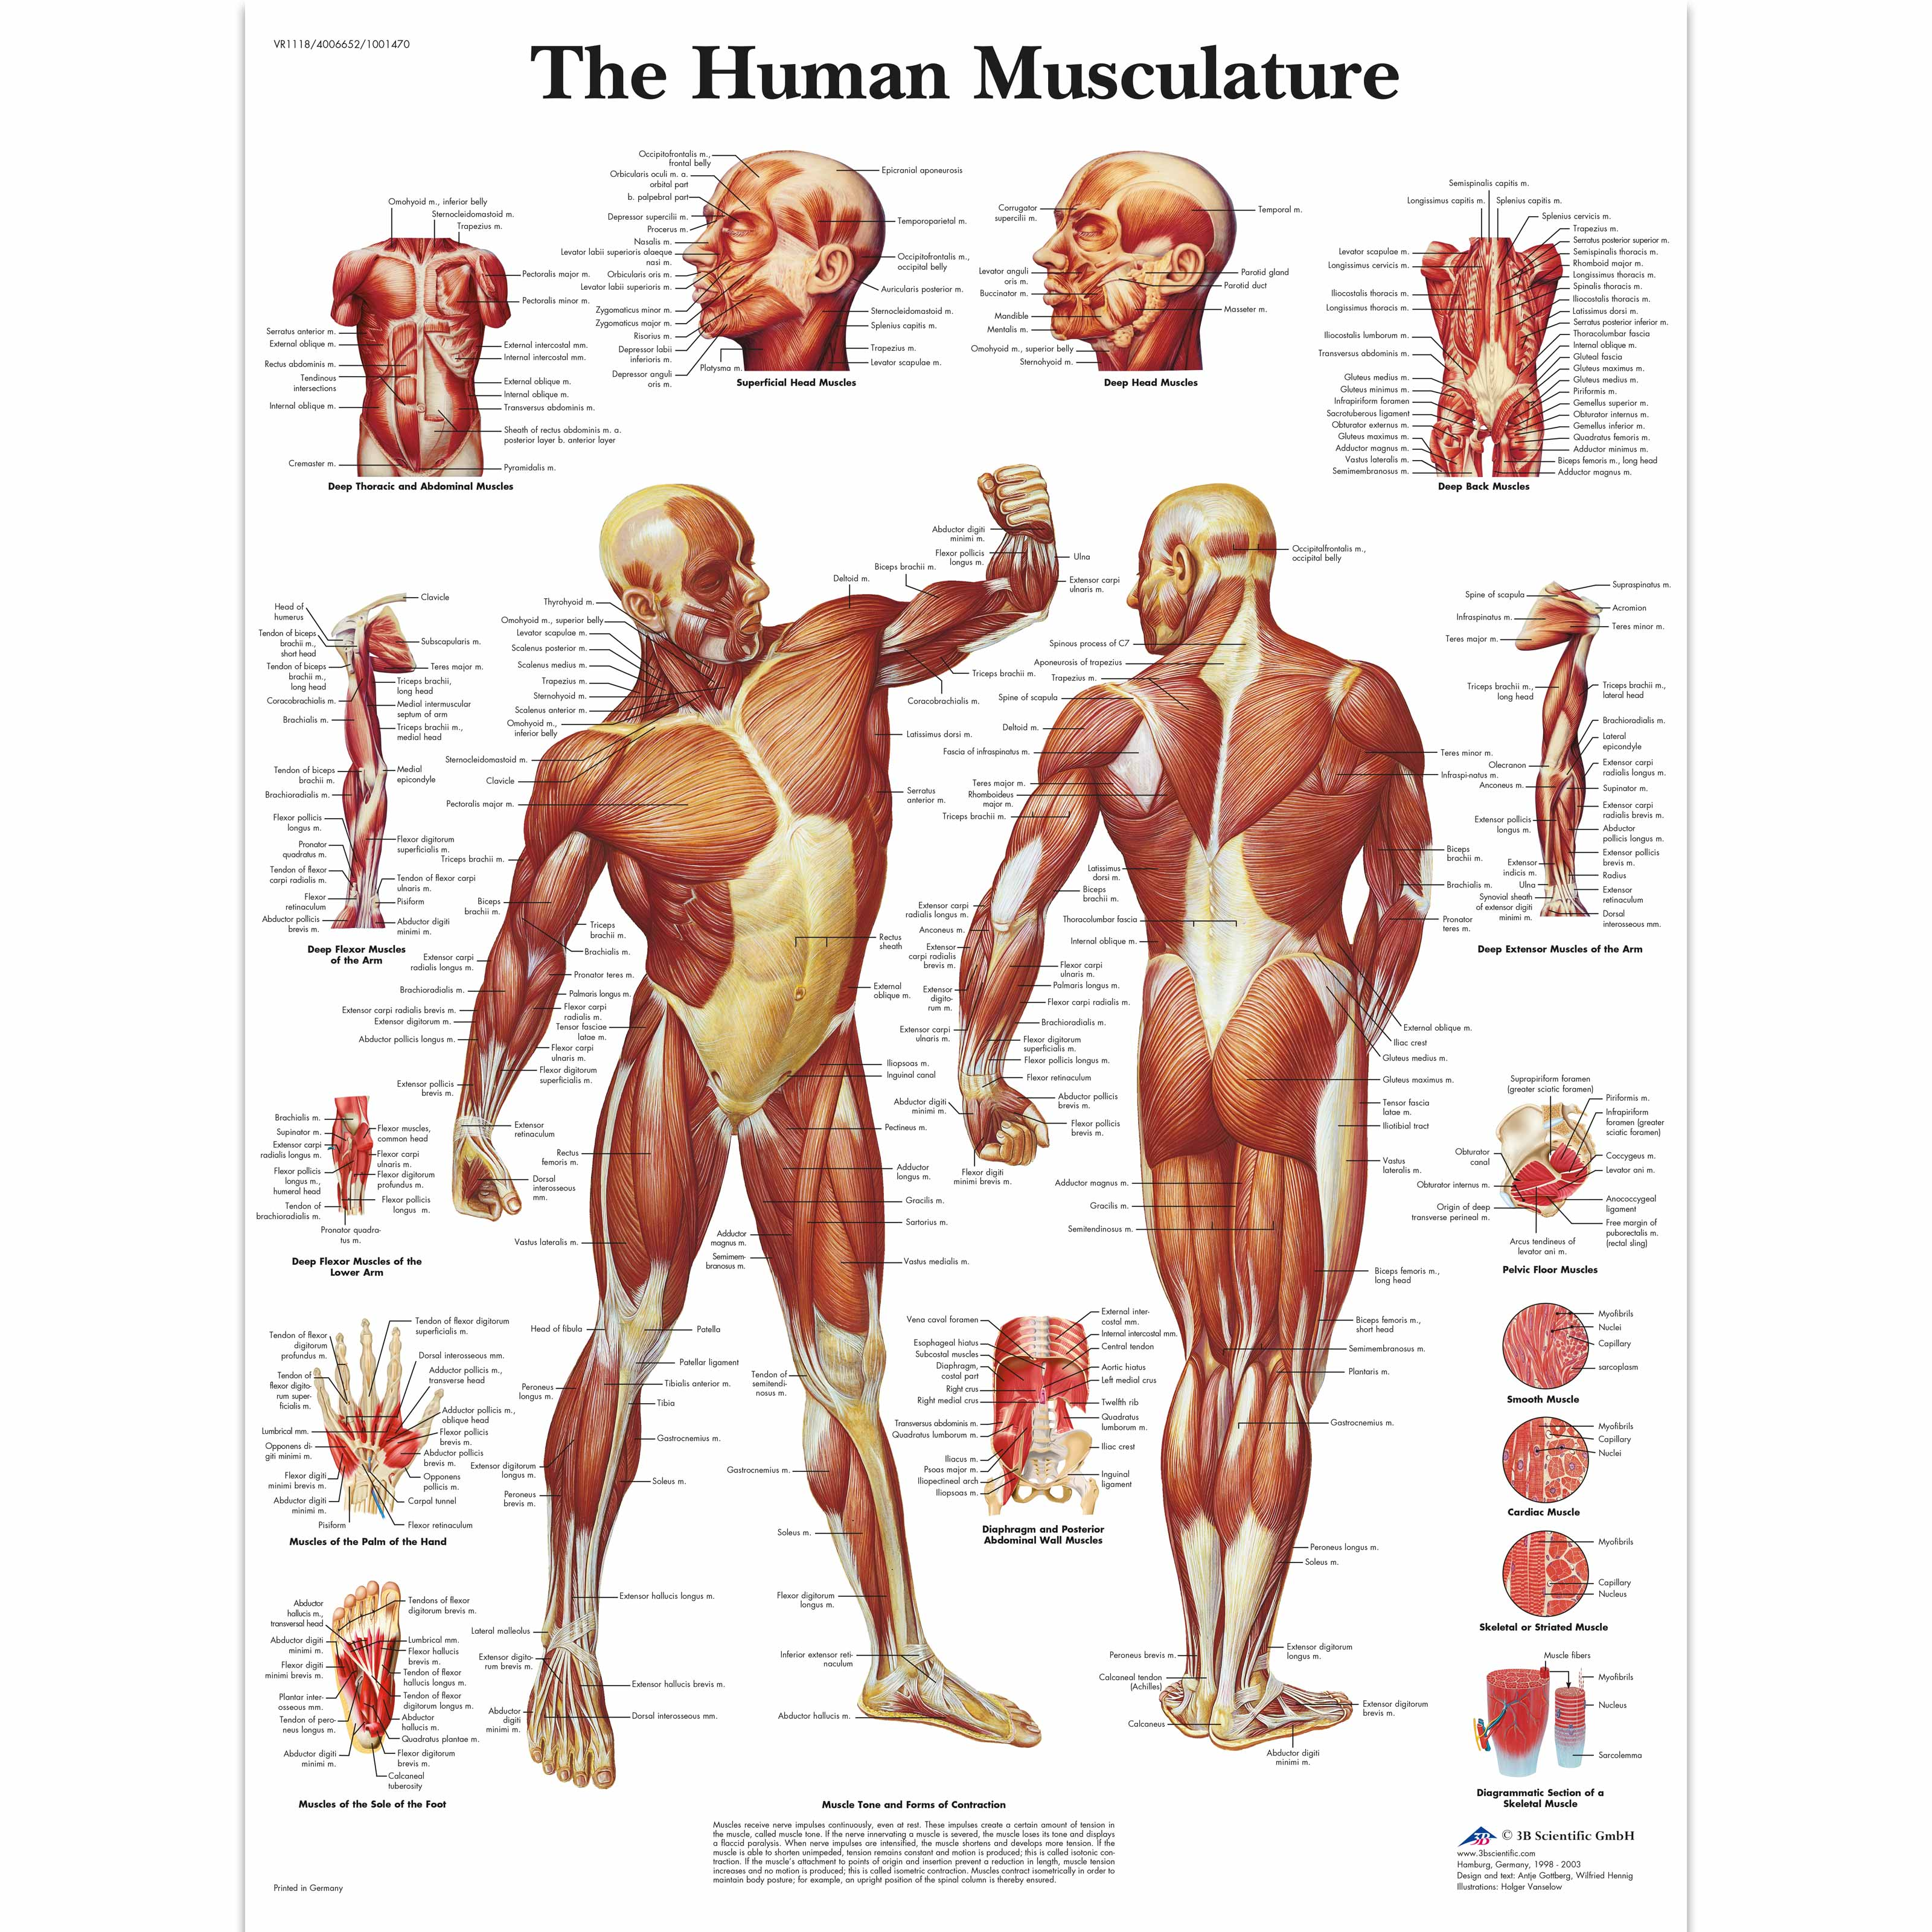 human muscle chart | human muscle poster | human musculature chart, Muscles